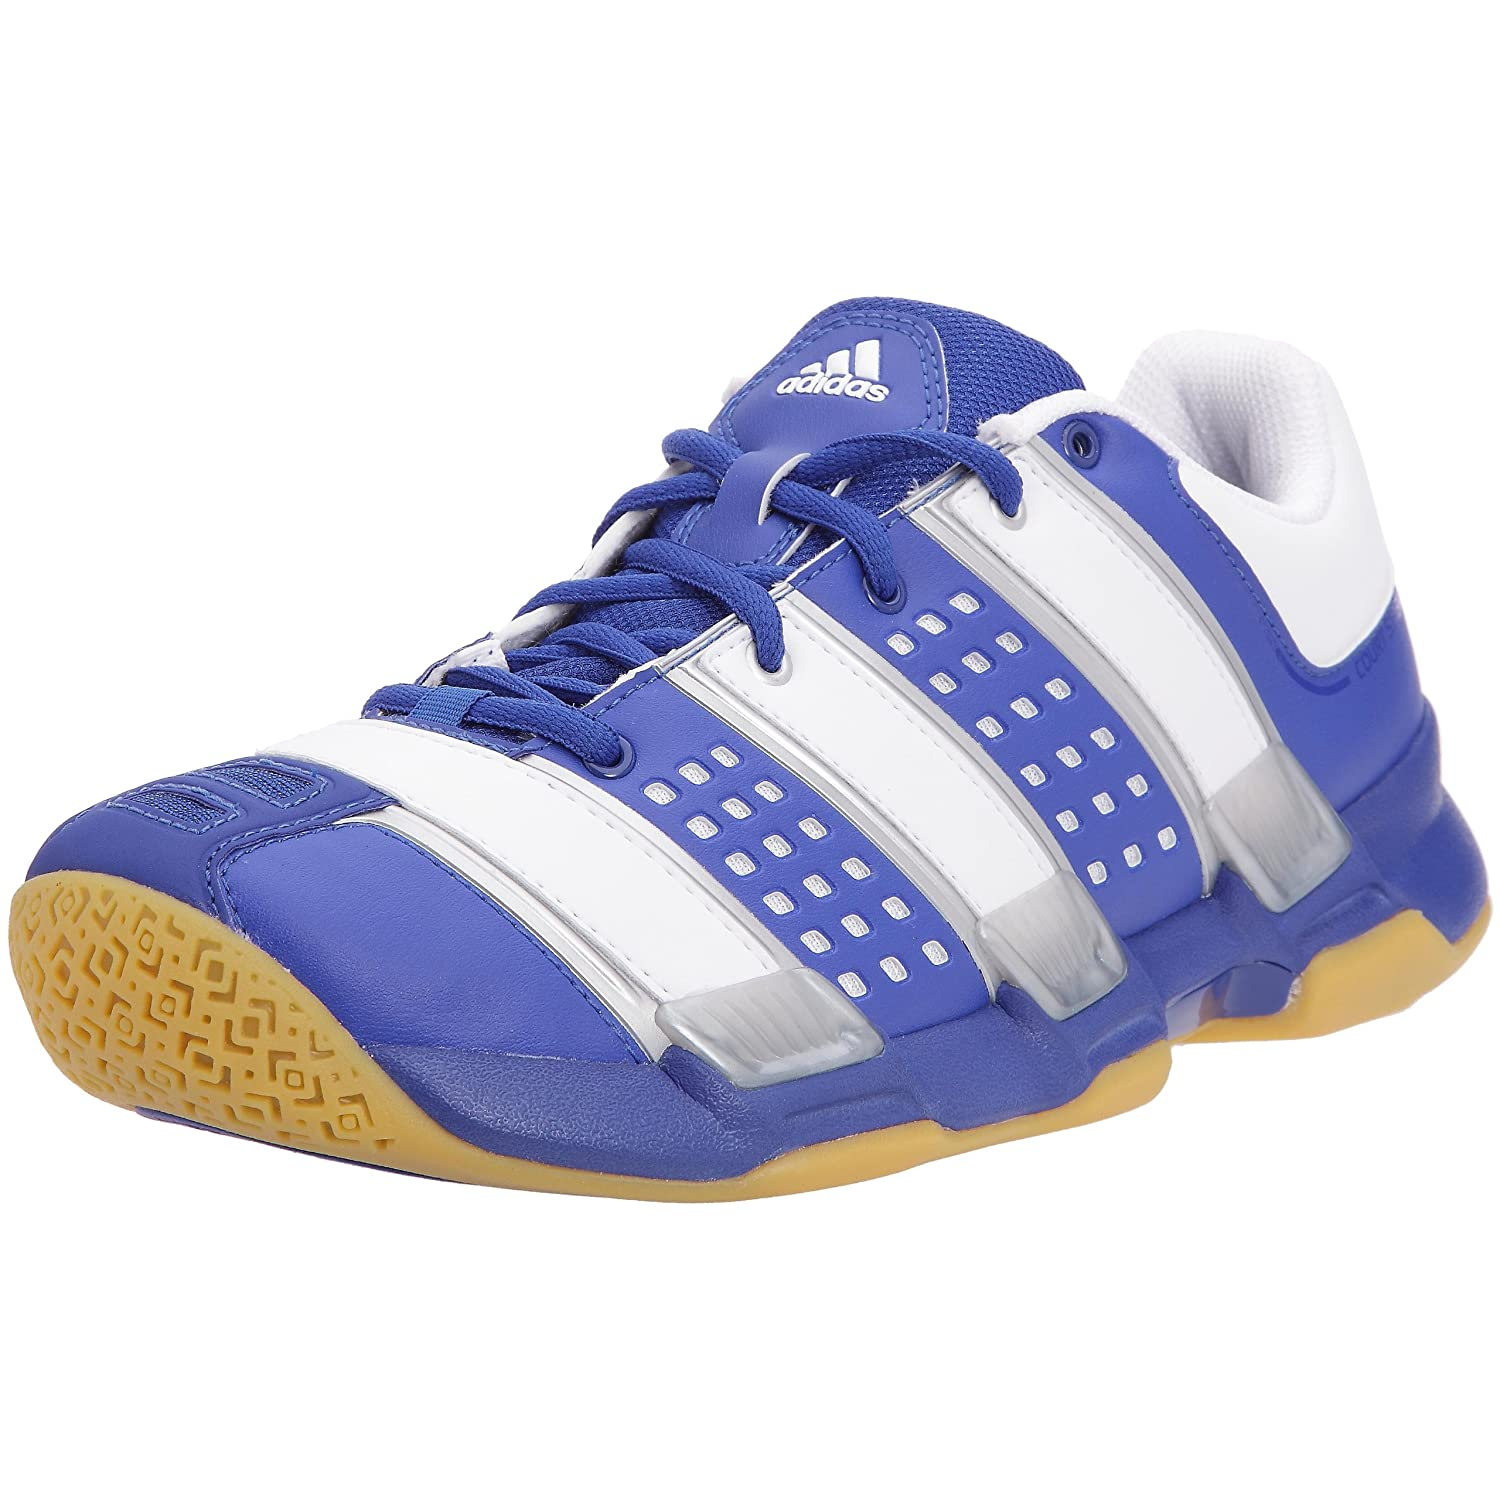 Amazon.com: Adidas Court Stabil 5 Indoor Court Shoes - 6.5 ...